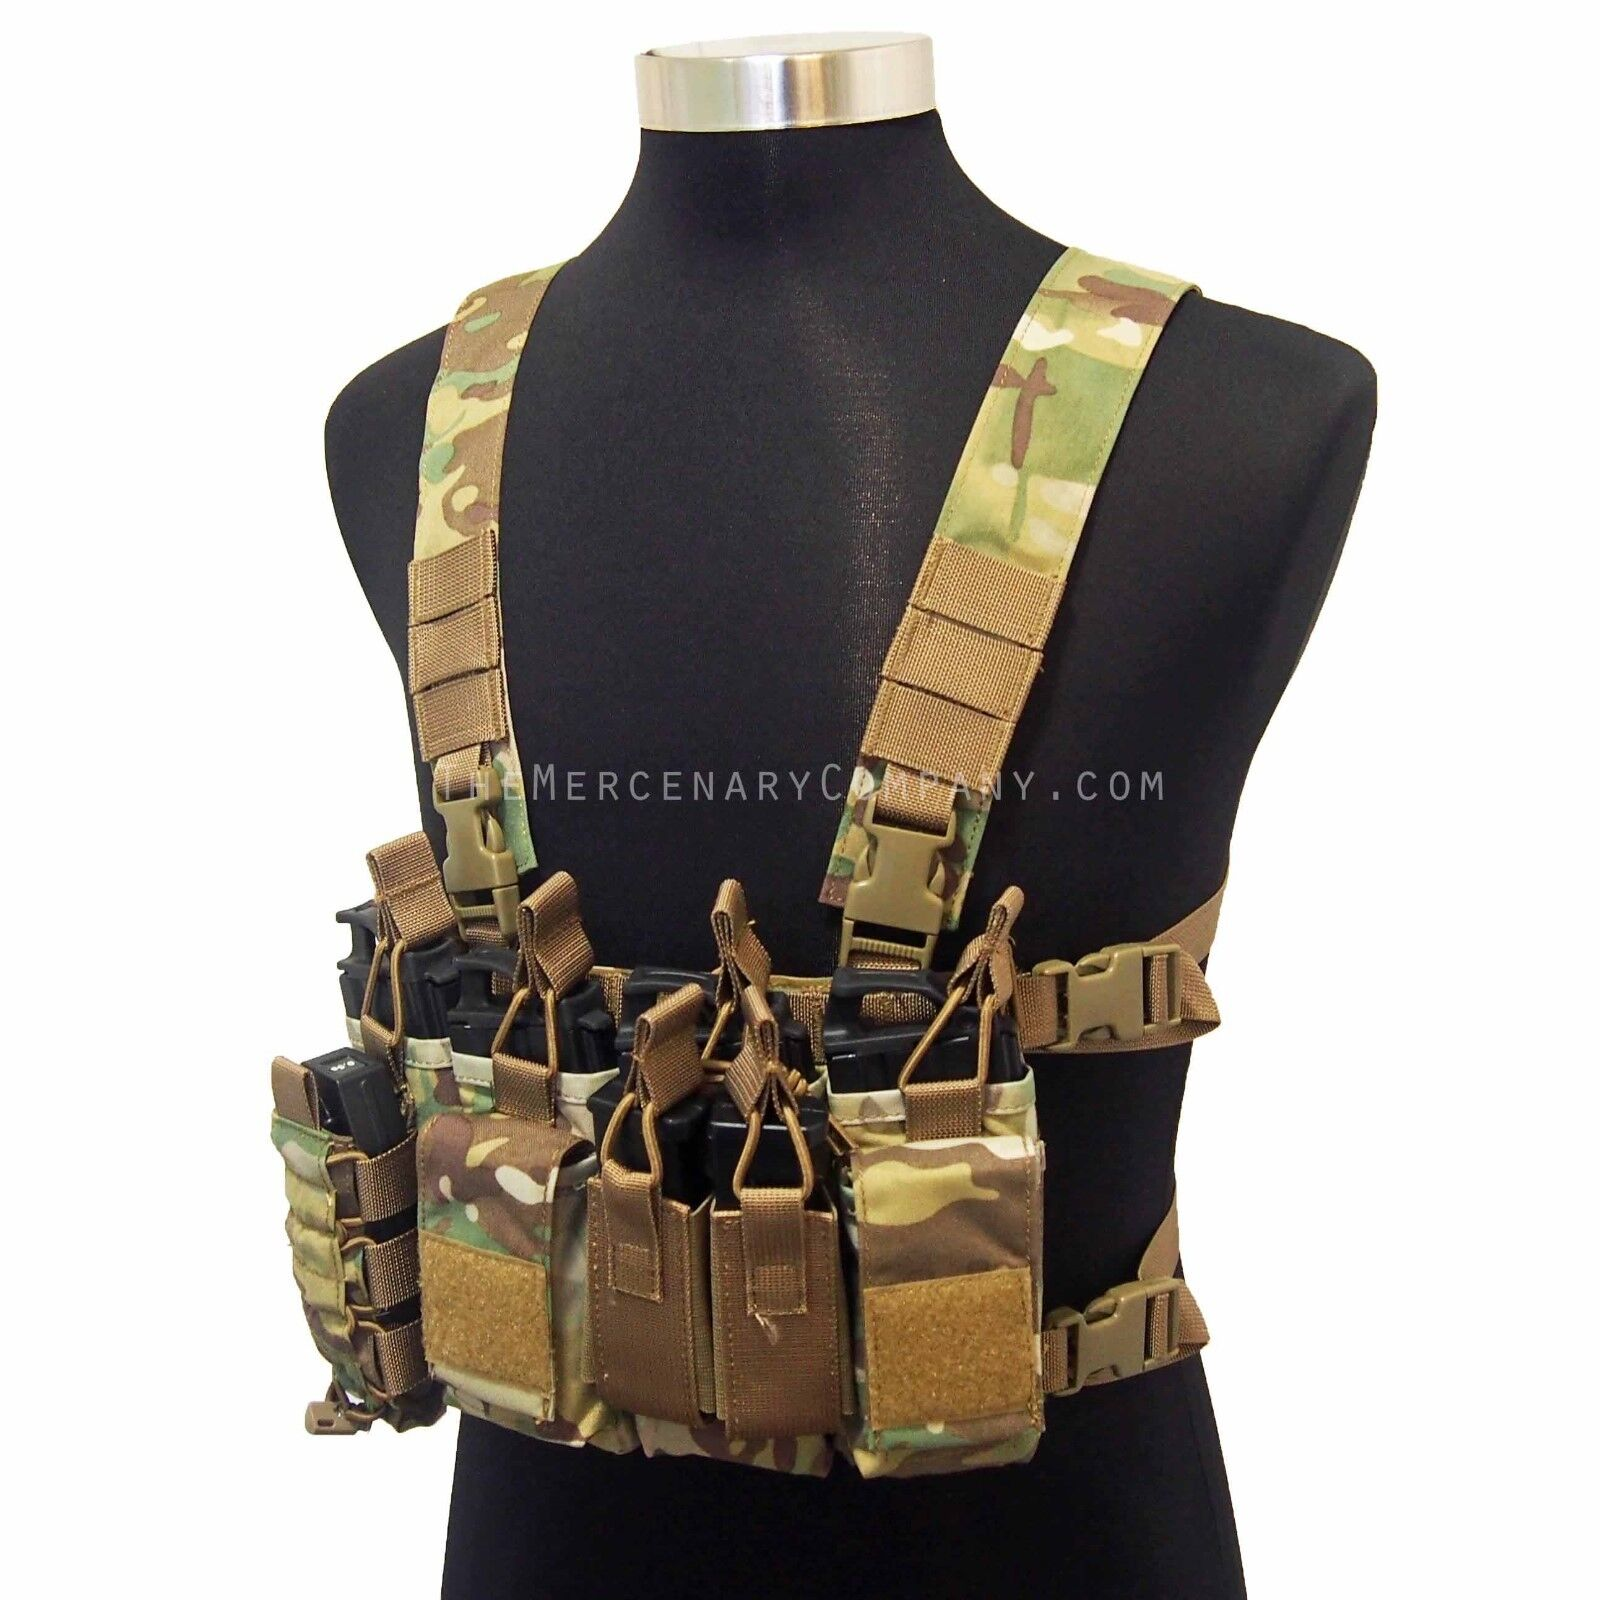 The Mercenary Company D3 223 Chest Rig MOLLE Vest  - Spiritus Micro Fight Haley  40% off